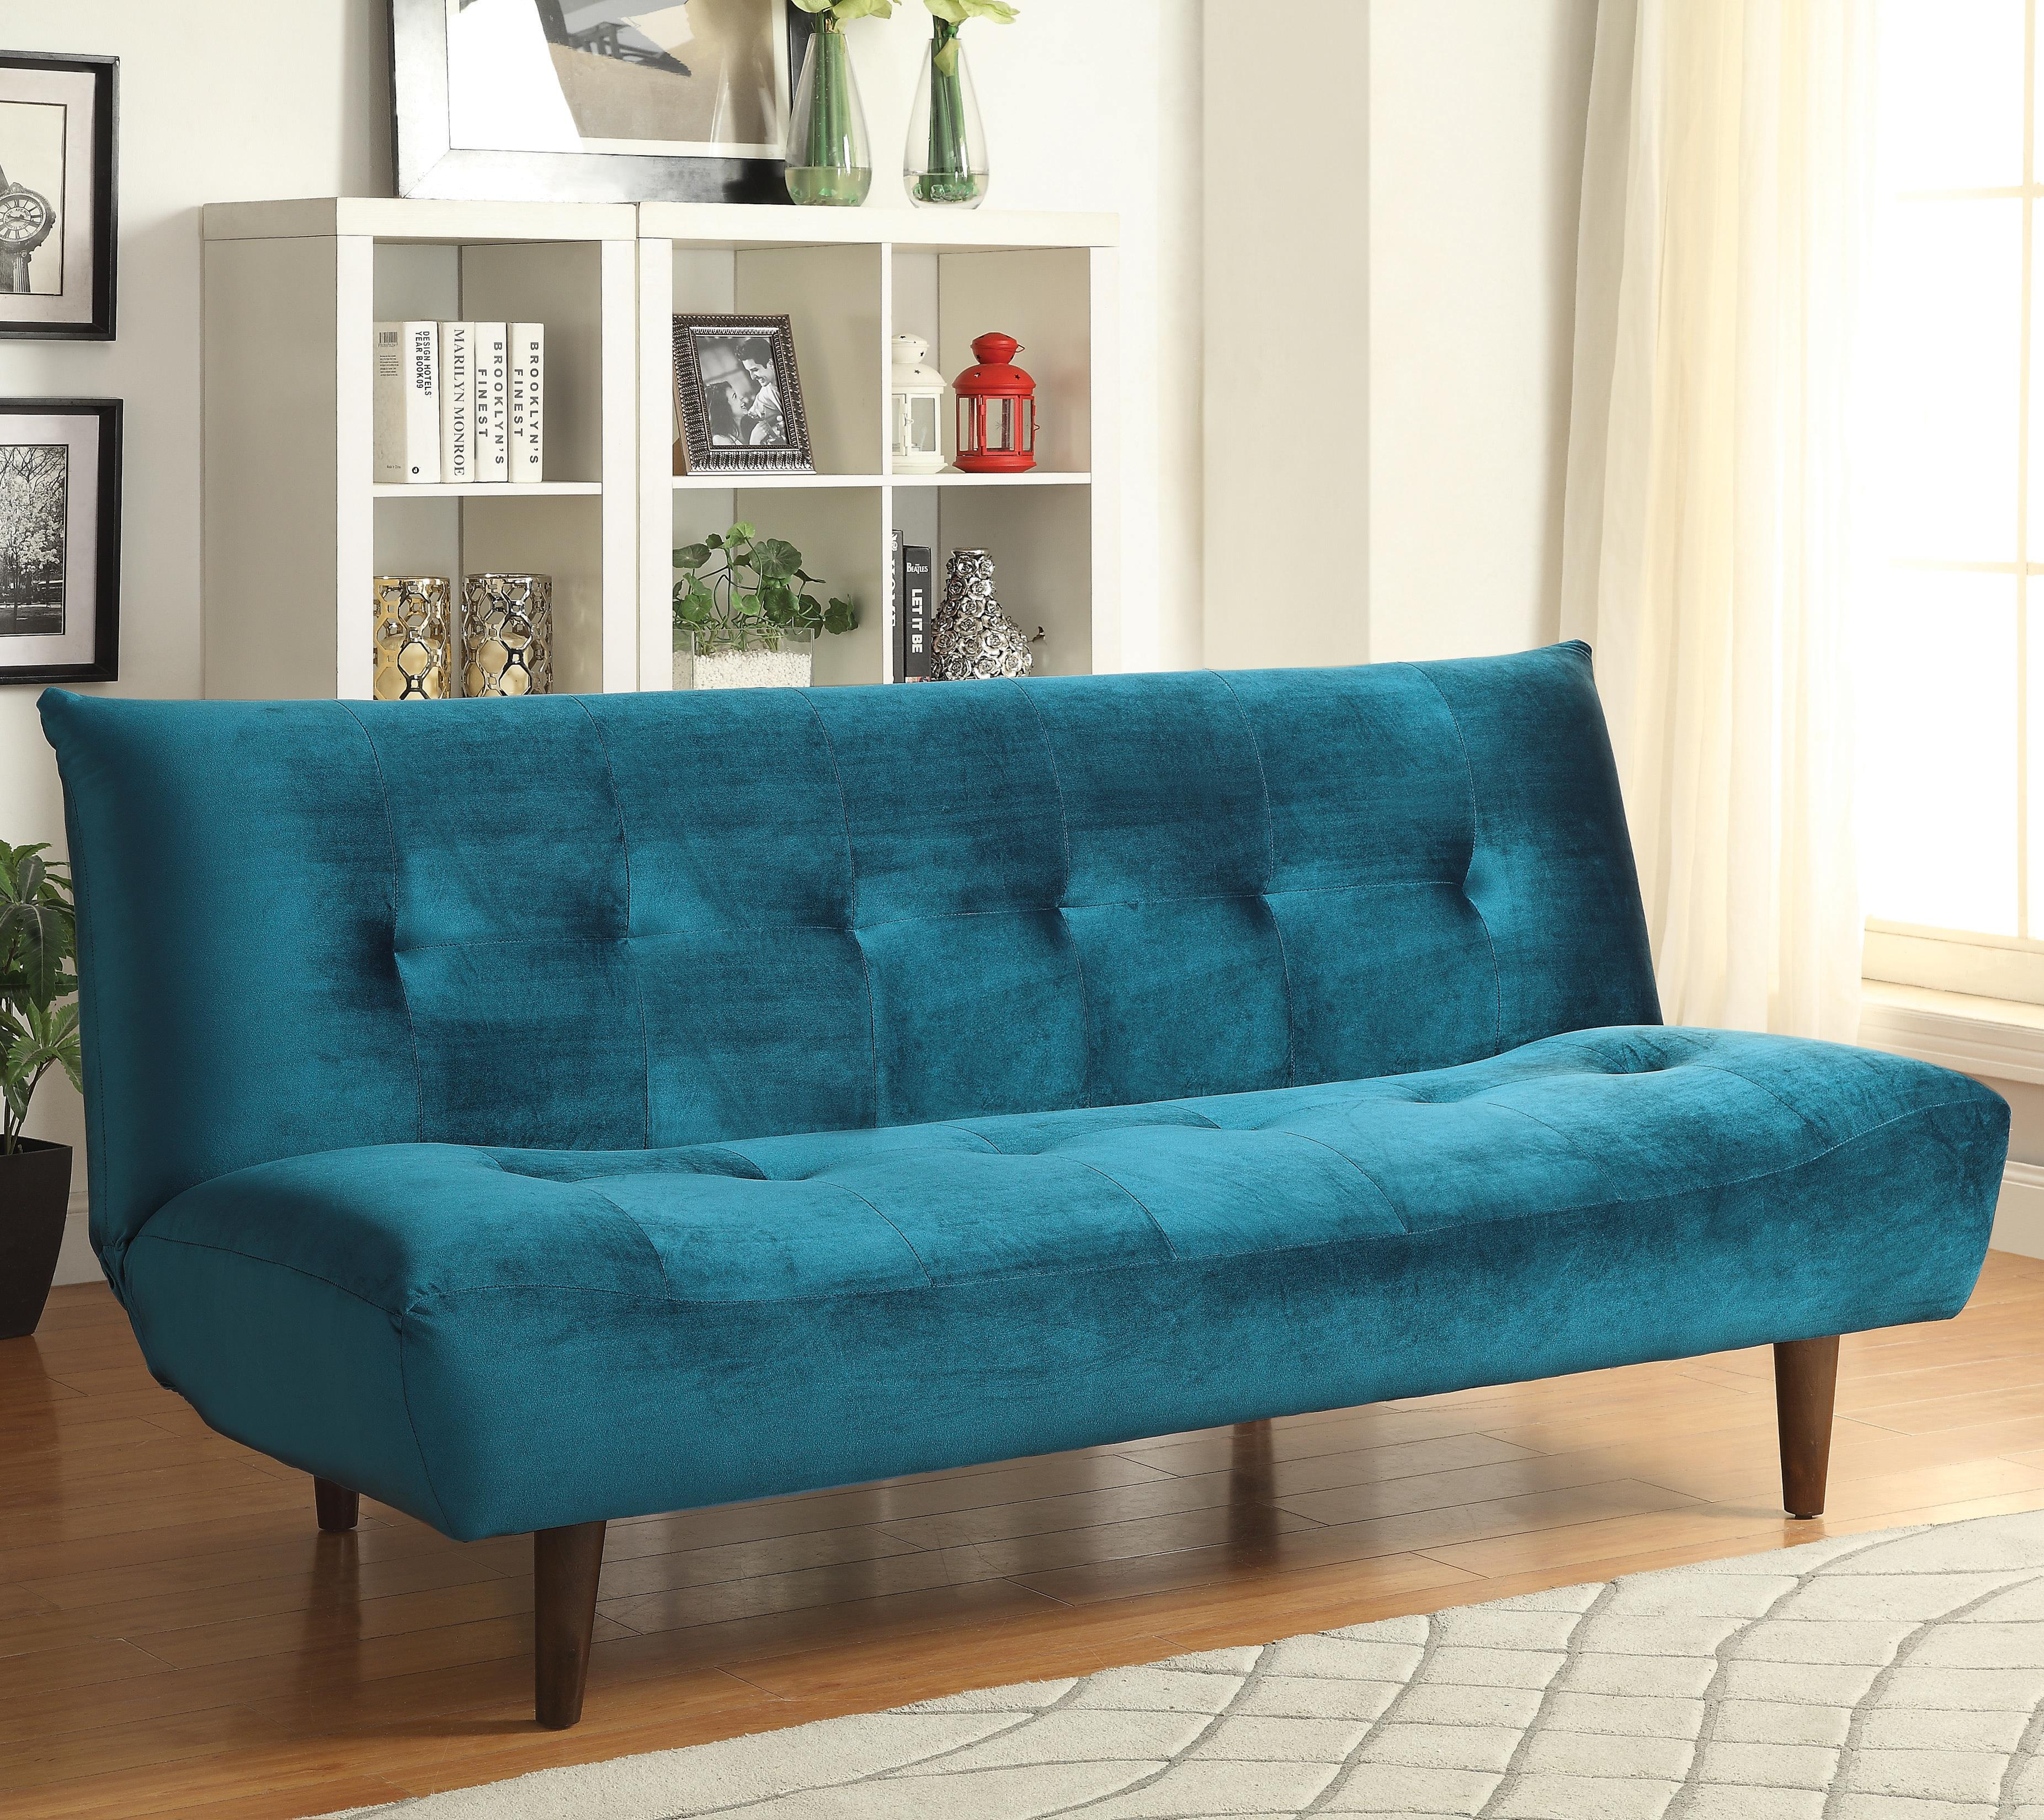 Coaster Sofa Beds and Futons -  Sofa Bed - Item Number: 500098